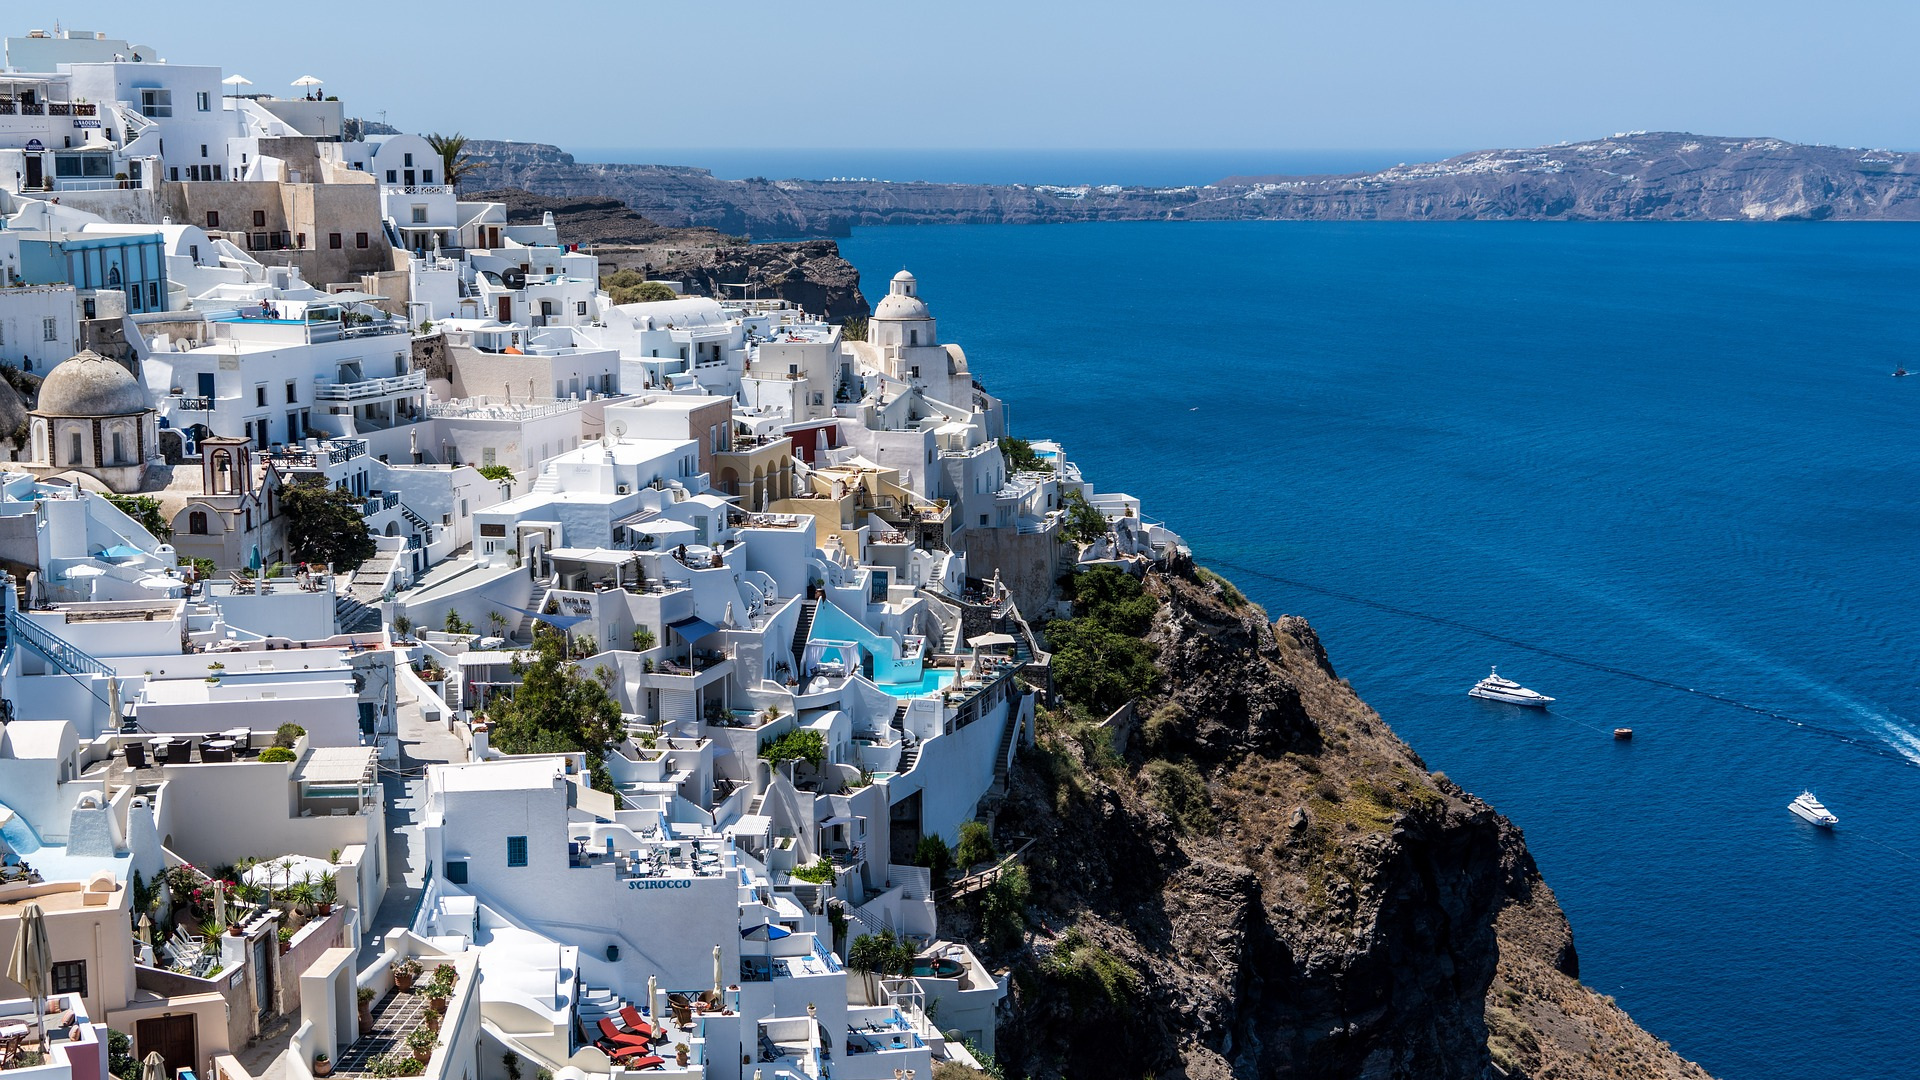 10-day Highlights of Greece Escape with 4-night Iconic Aegean Cruise